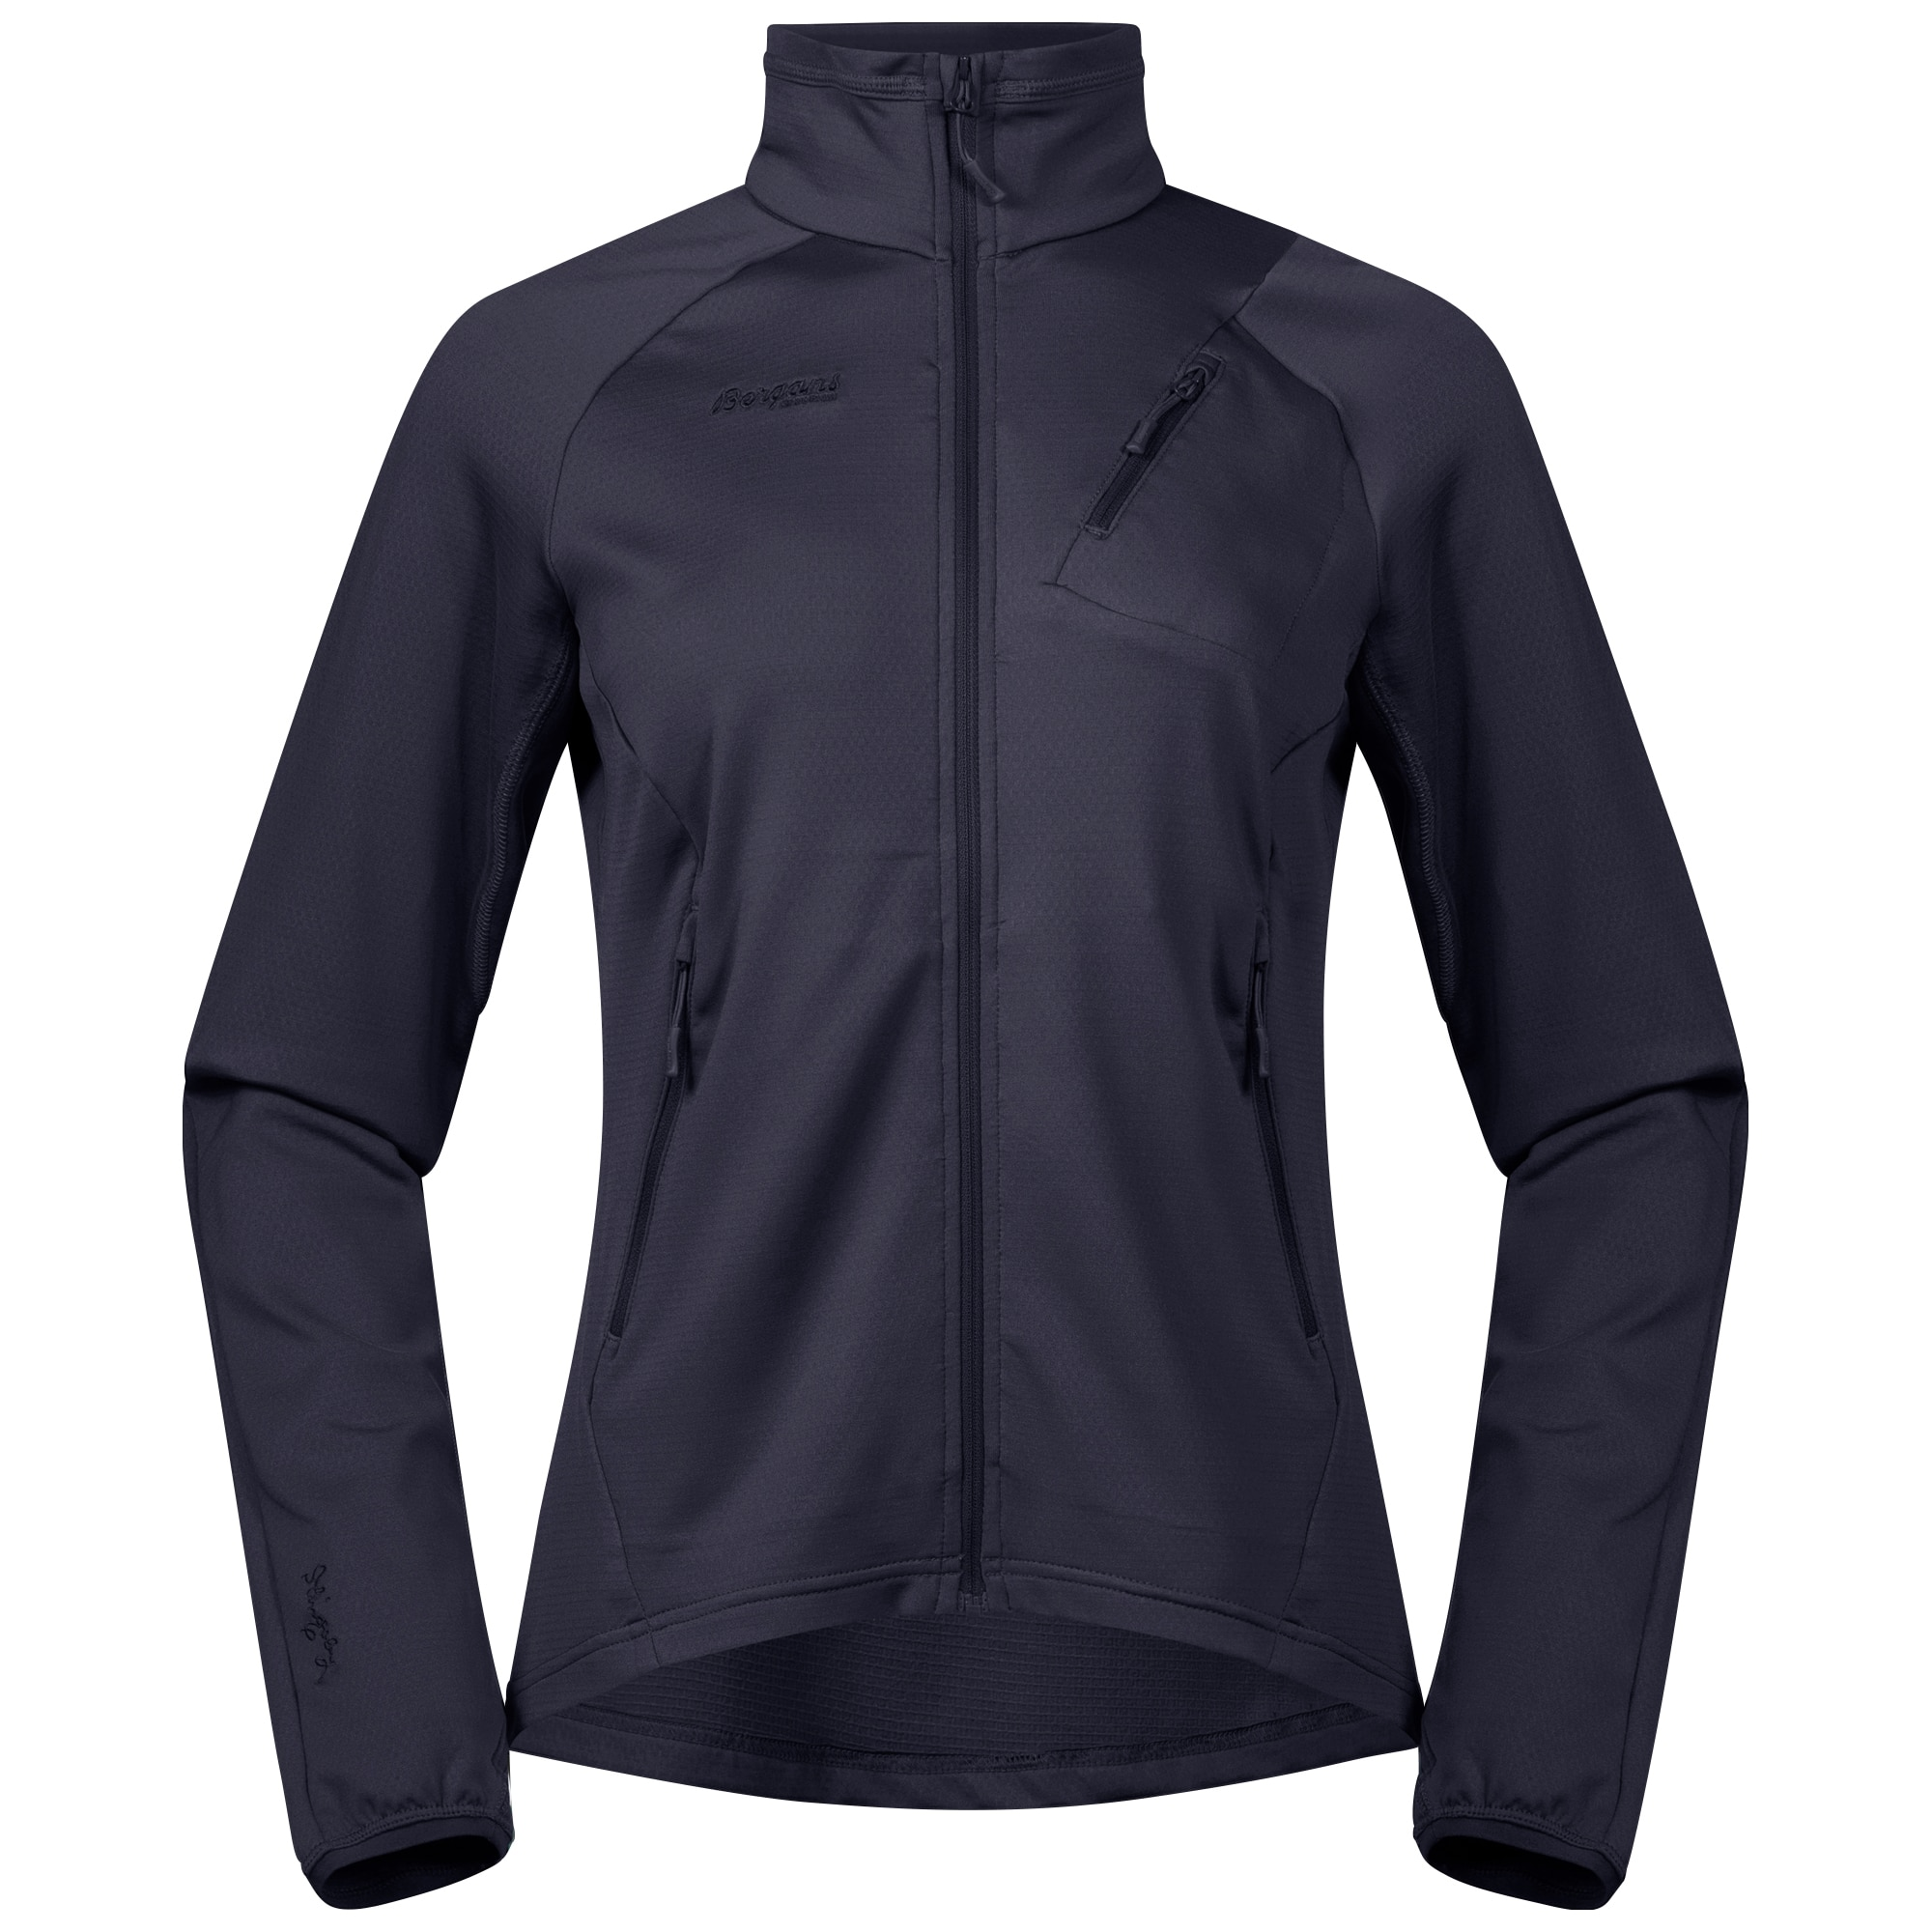 Galdebergtind Lady Jacket